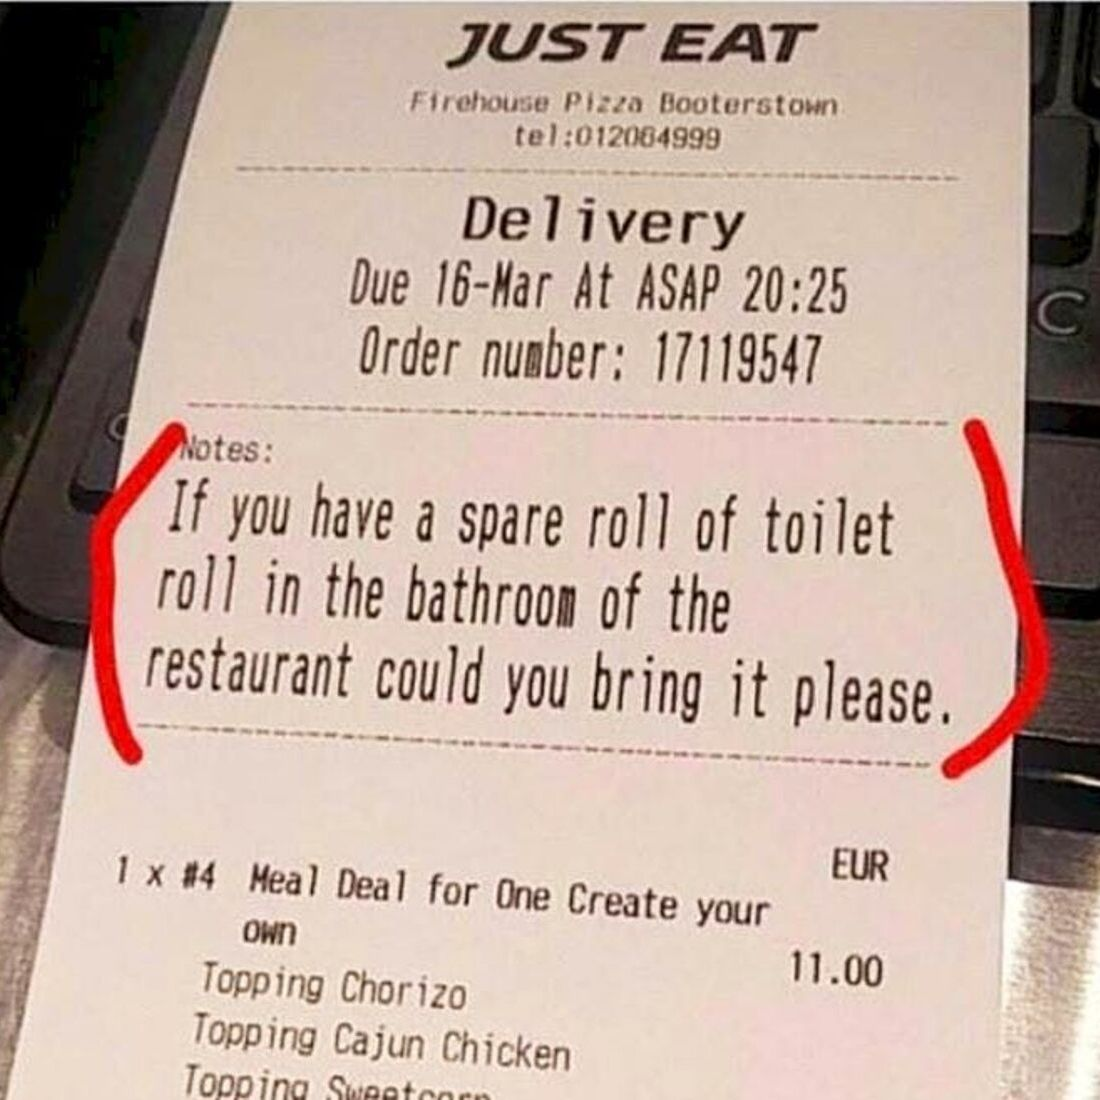 delivery just eat